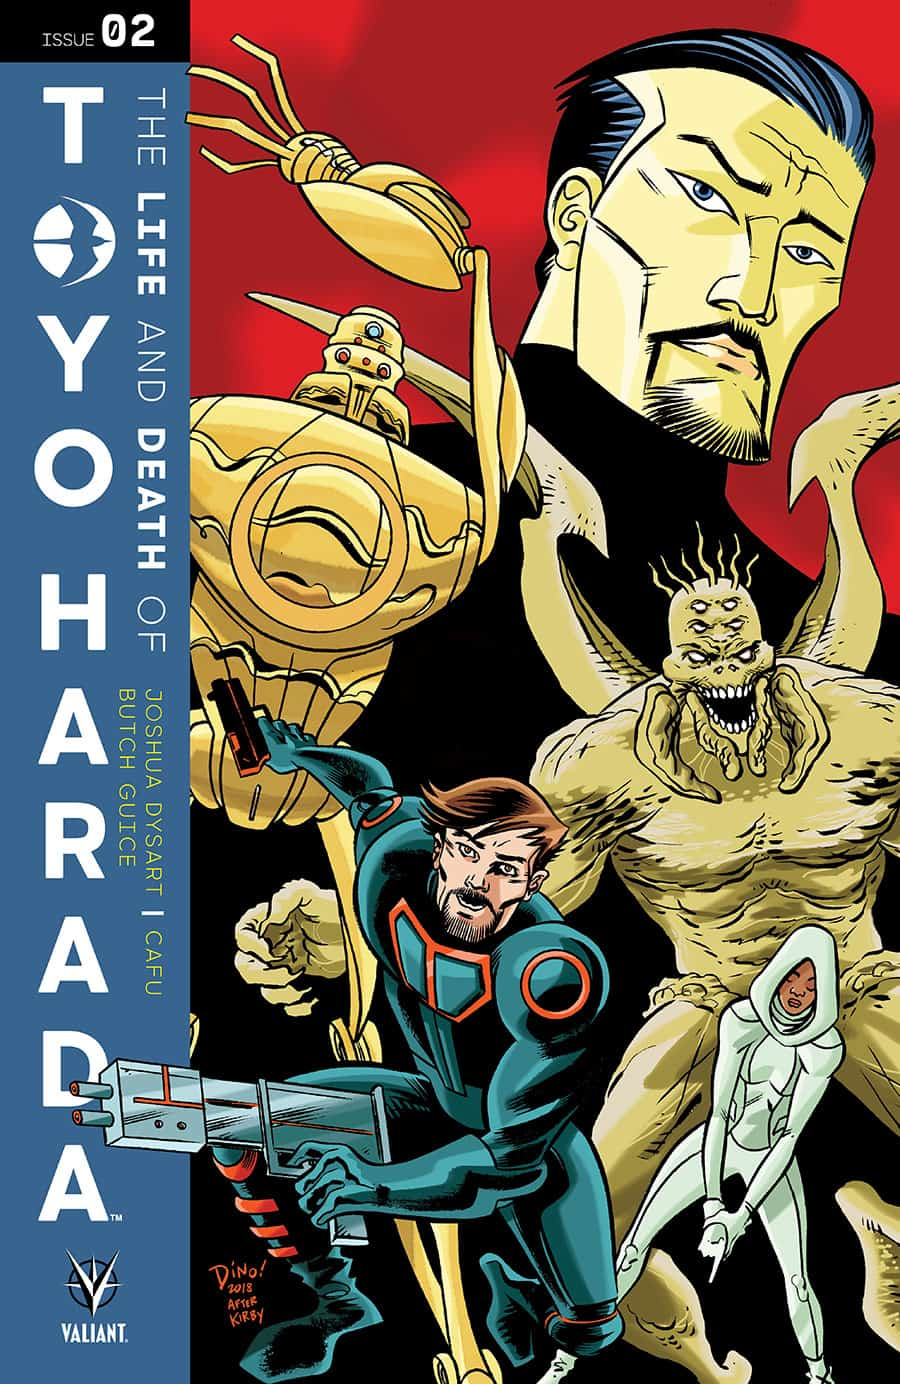 THE LIFE AND DEATH OF TOYO HARADA #2 - Cover C